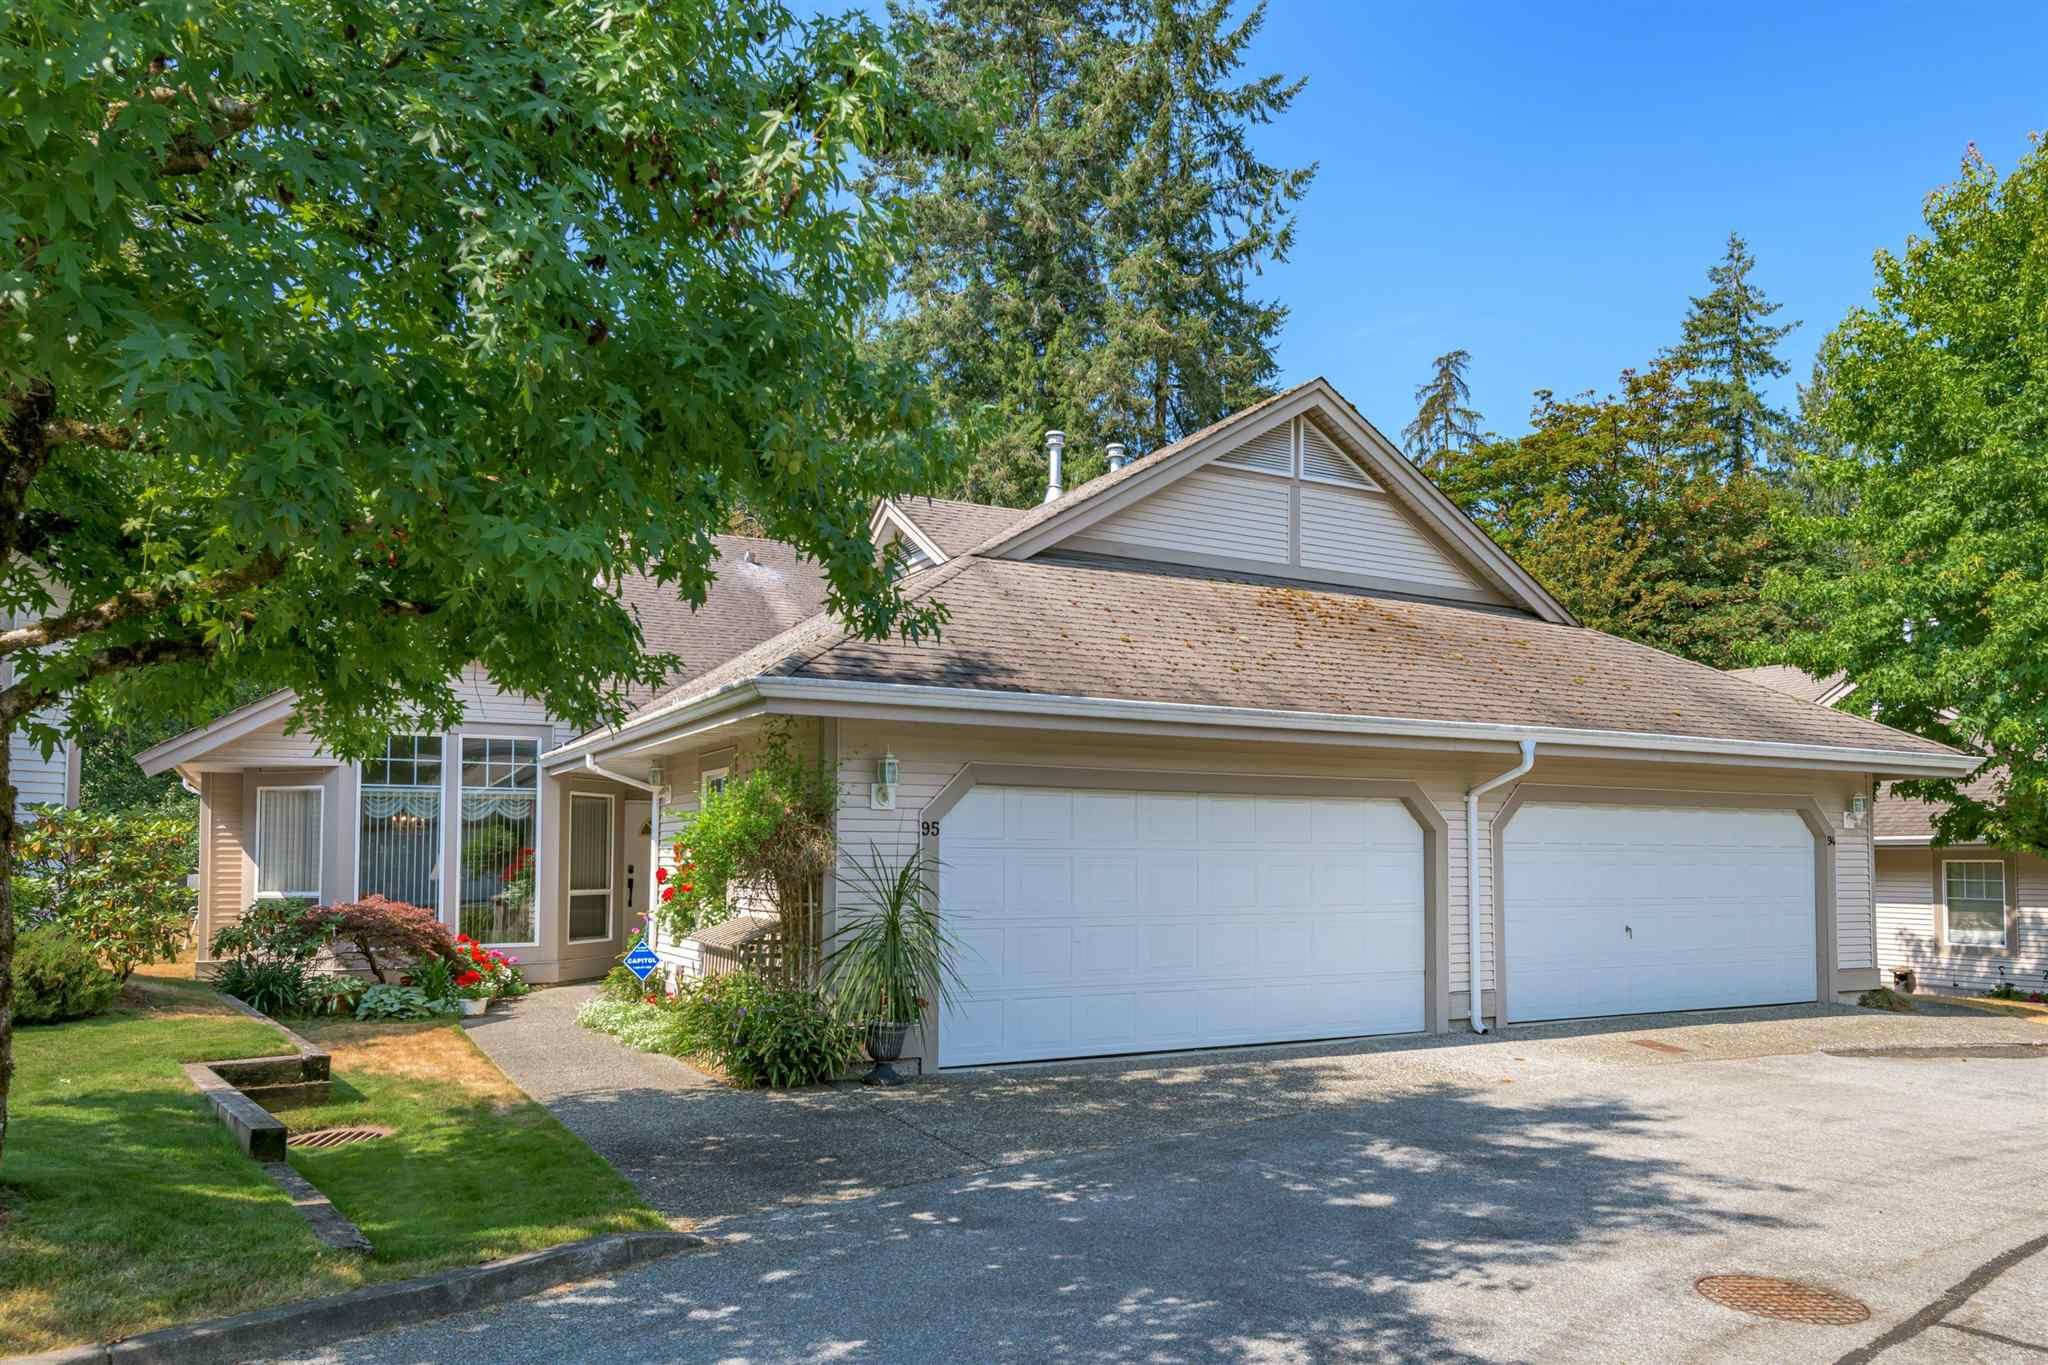 """Main Photo: 95 9025 216 Street in Langley: Walnut Grove Townhouse for sale in """"COVENTRY WOODS"""" : MLS®# R2606394"""